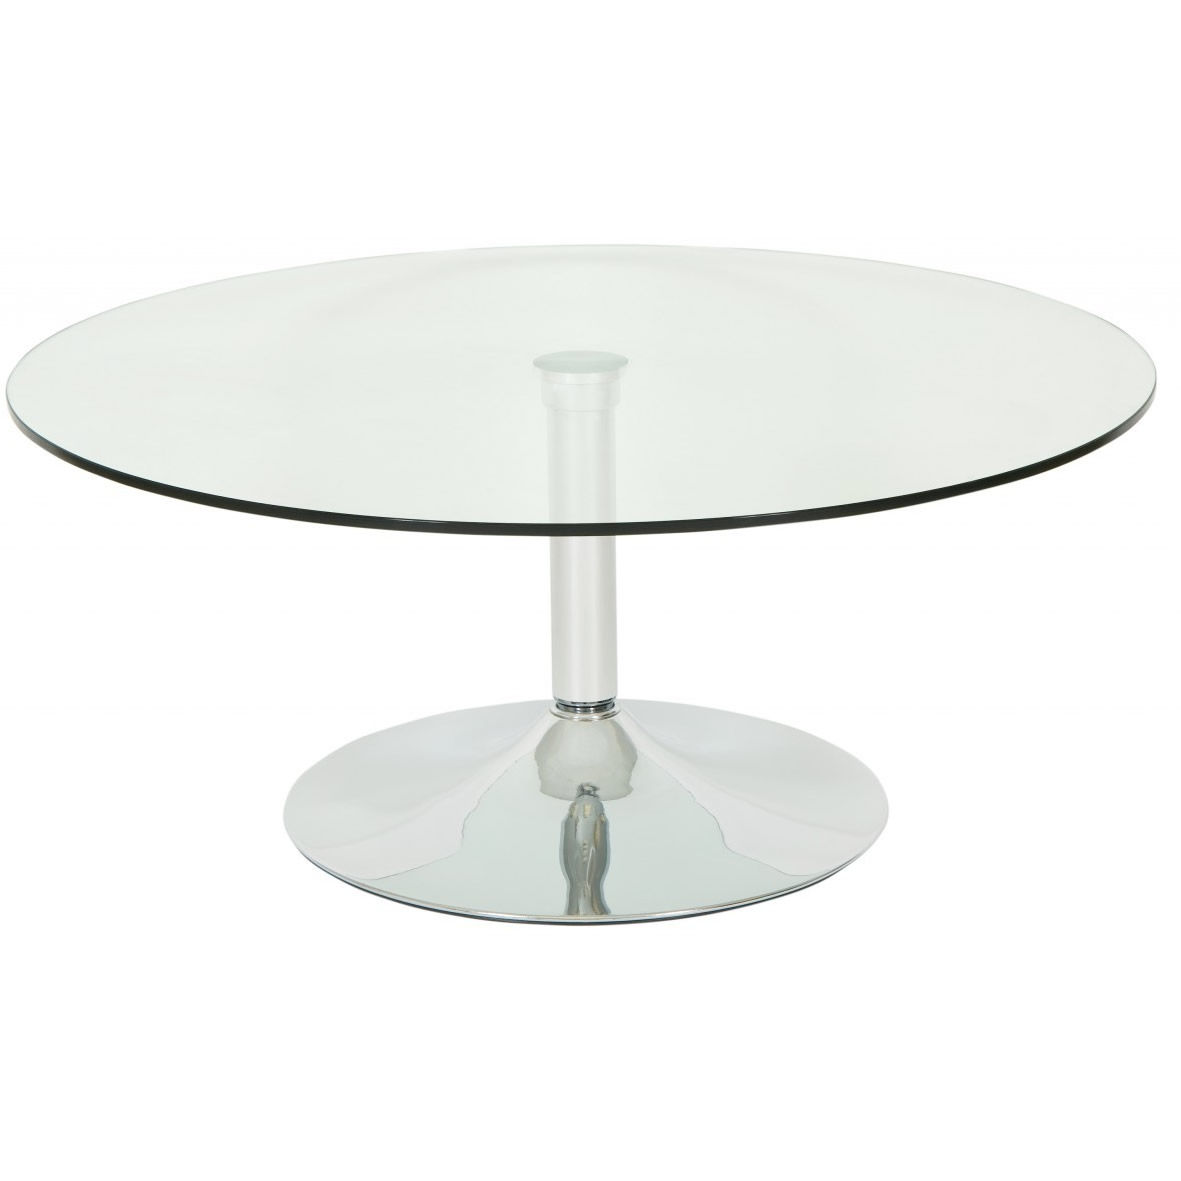 Round Glass Coffee Tables As The Best Decision For Many Premises Glass Round Coffee Tables Glass Cocktail Tables (View 9 of 10)